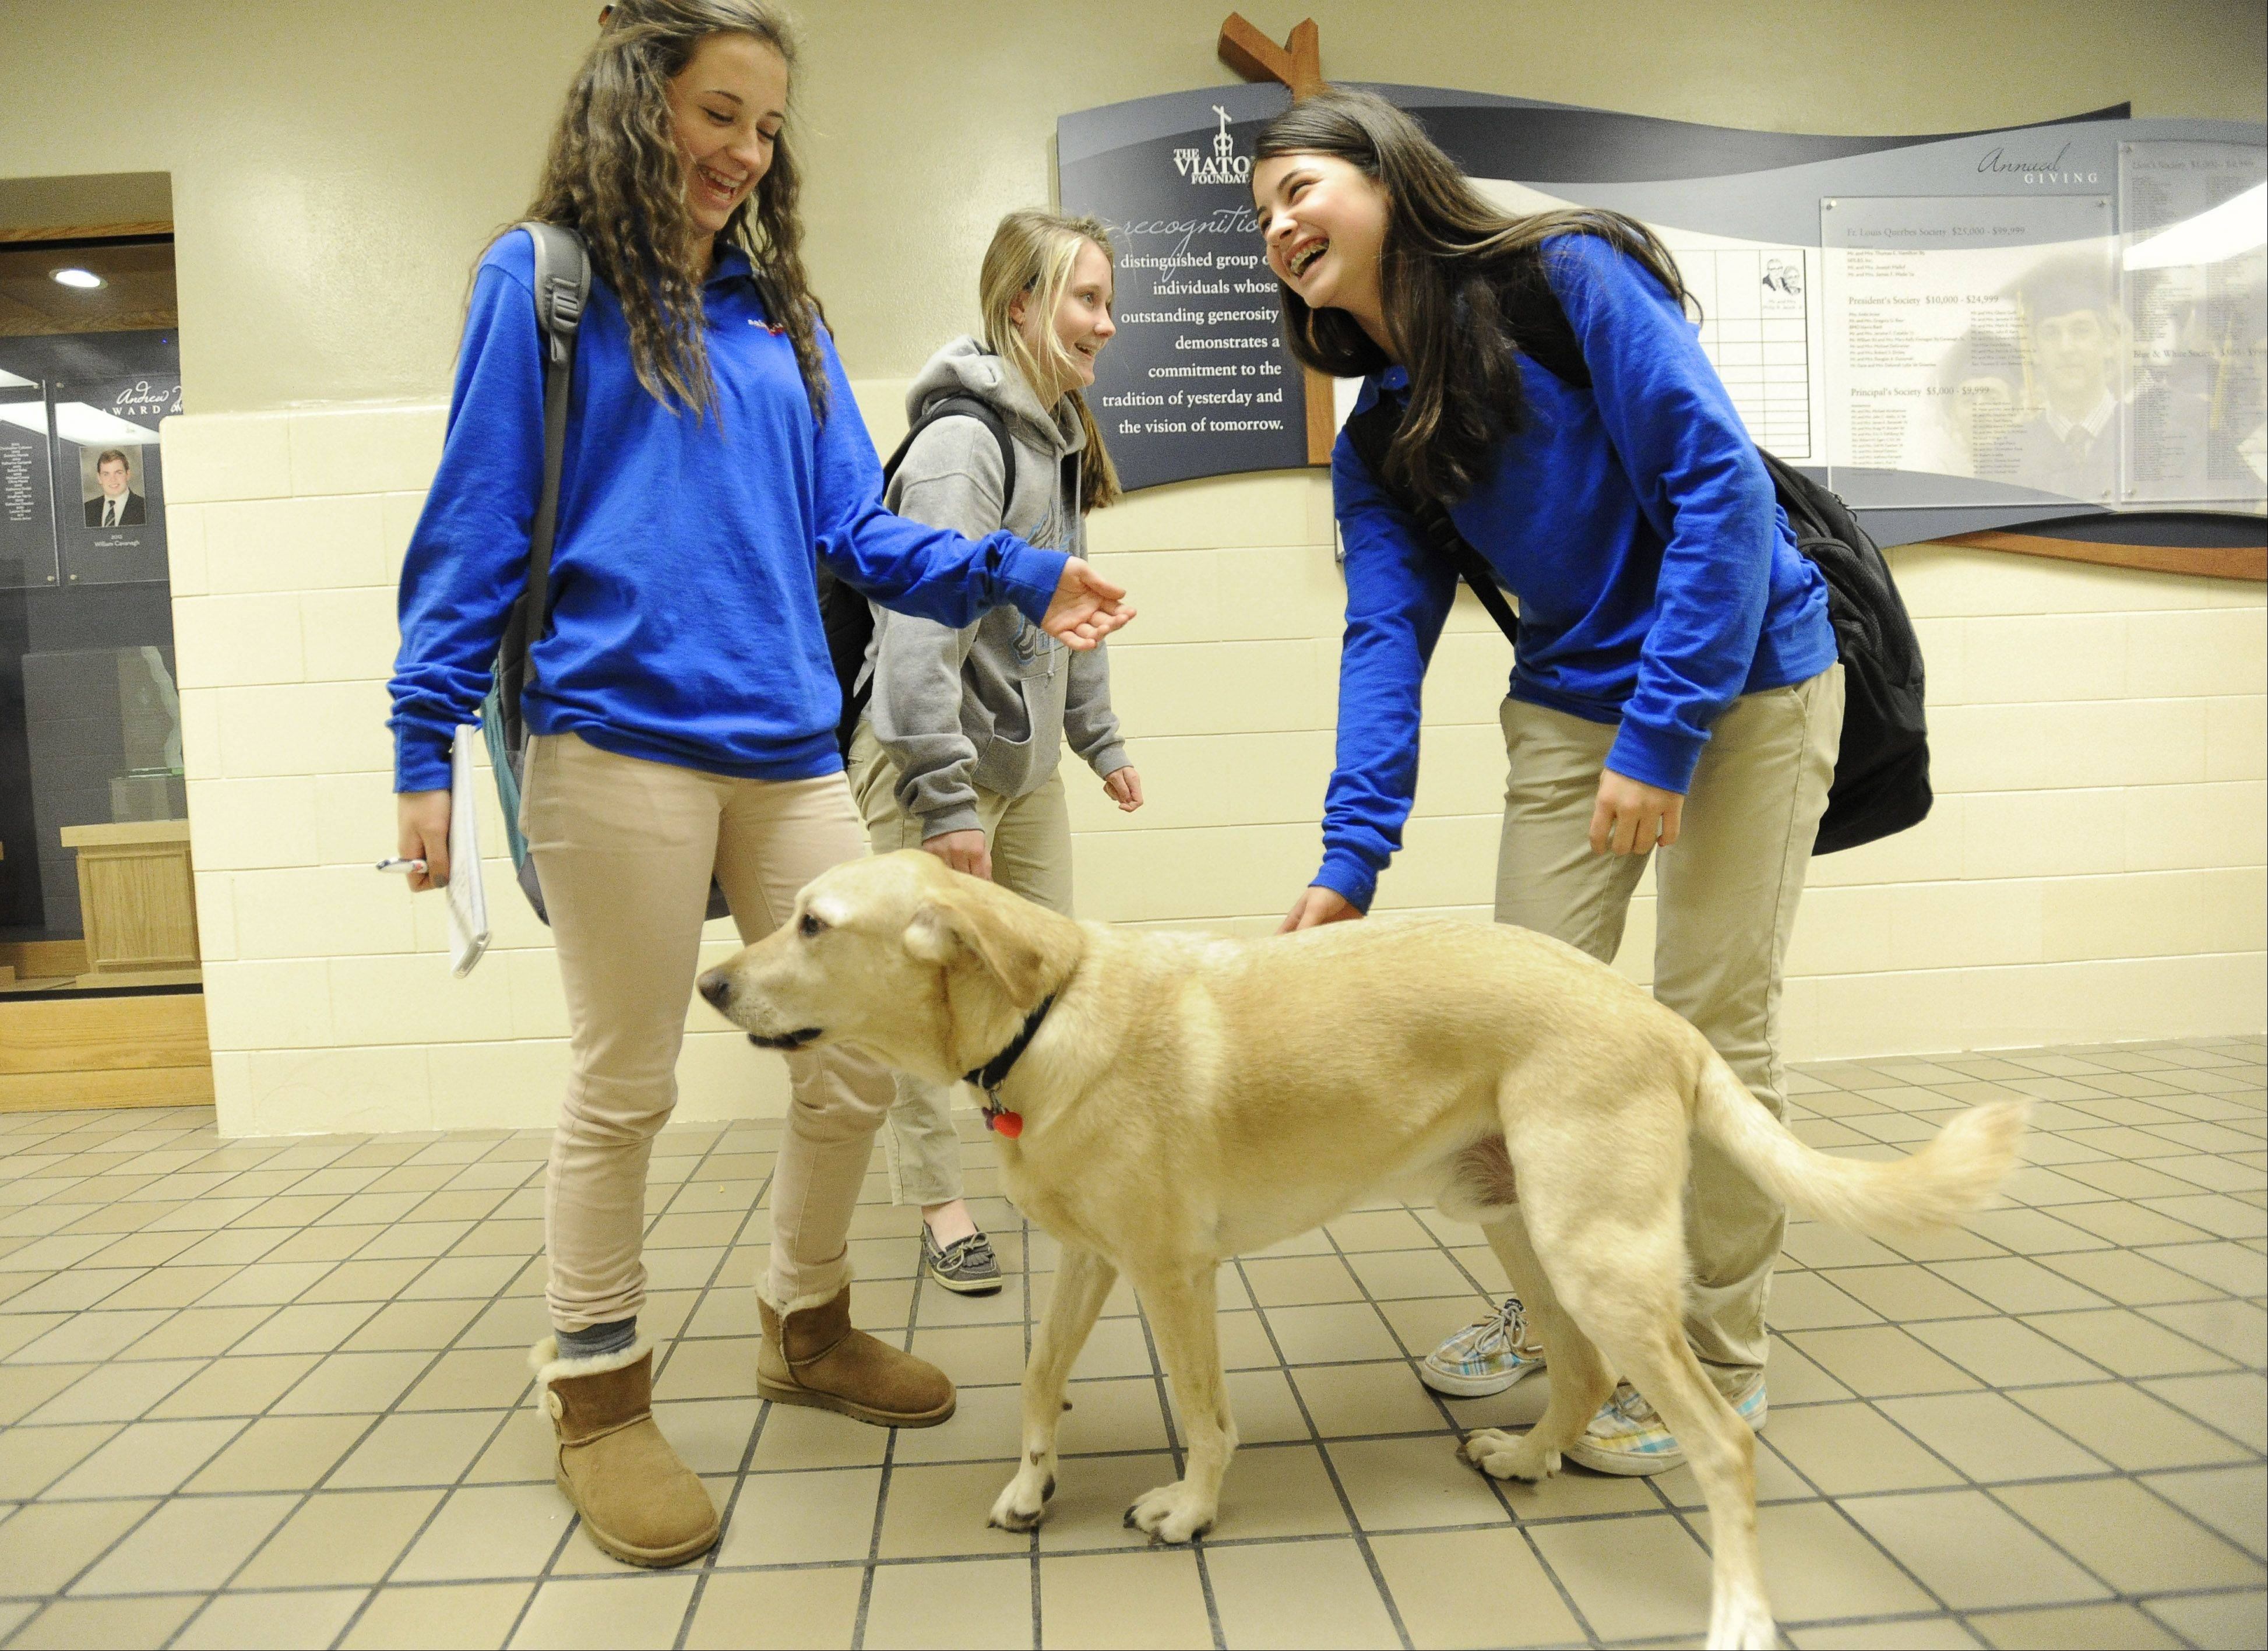 Freshmen Gianna Parise, right, and Delia Douglas have big smiles on their faces as they meet Archie in the hallway of St. Viator High School.